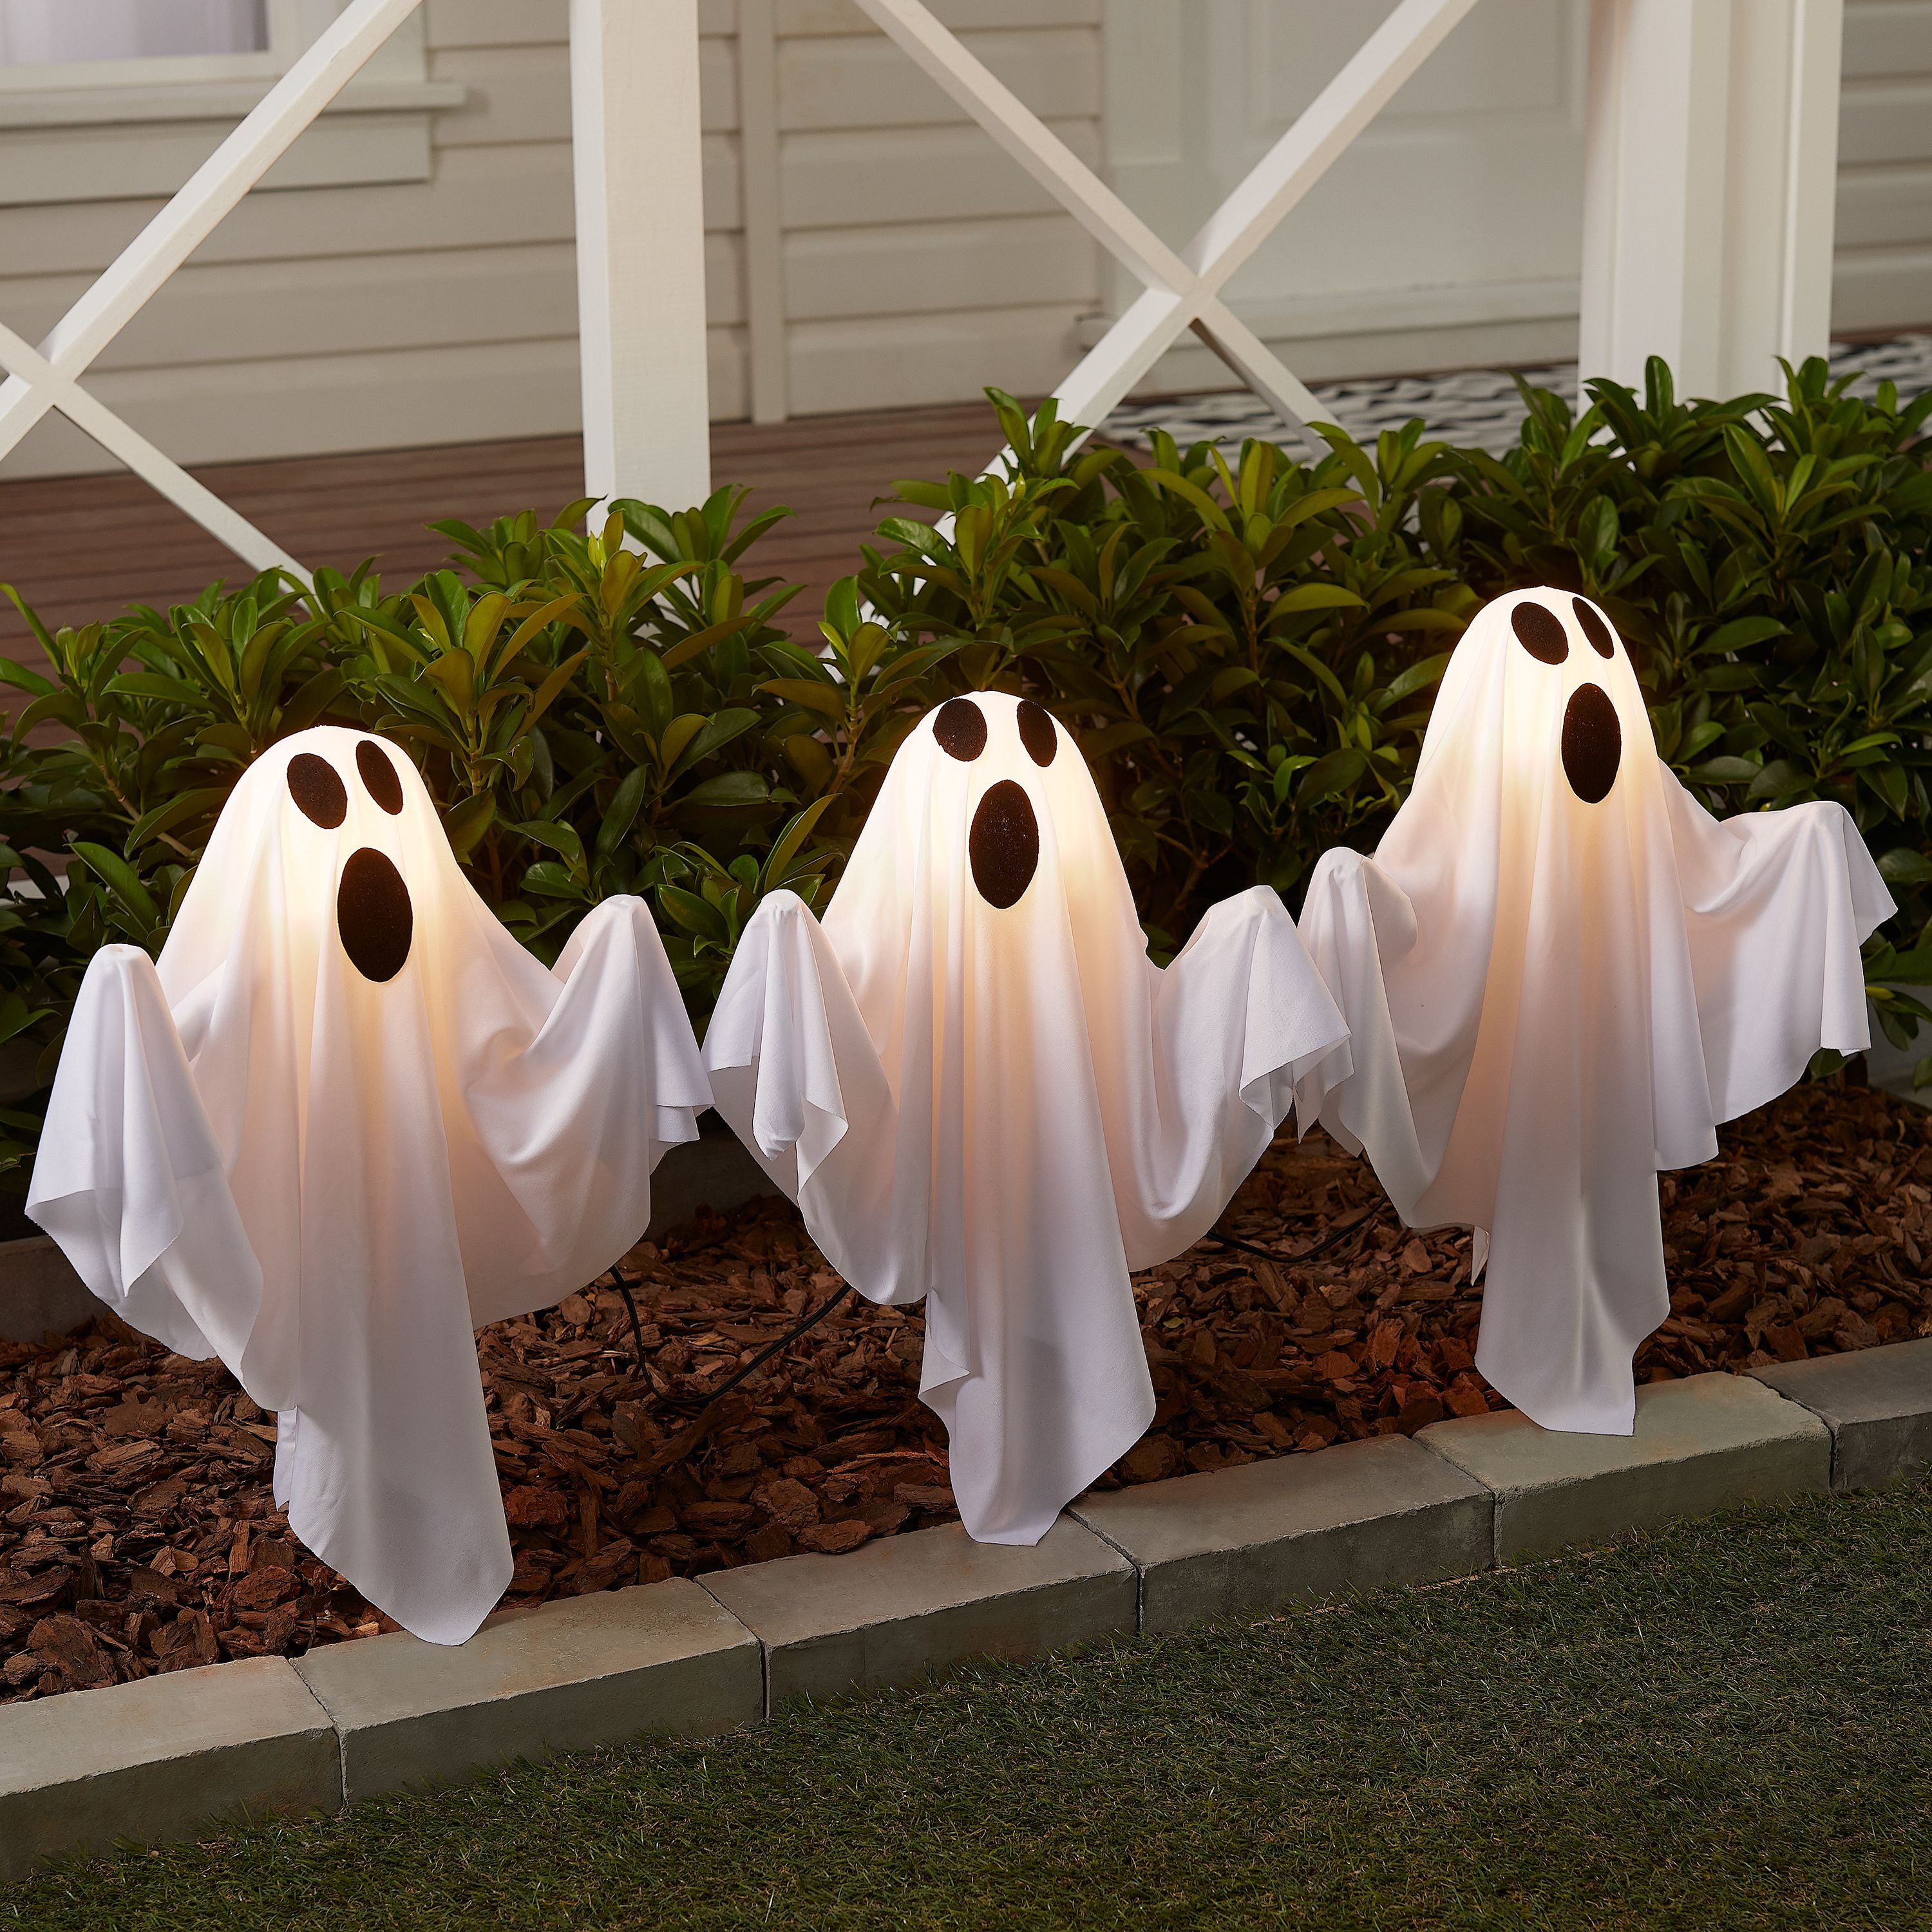 Way to Celebrate Light Up Ghost Lawn Stakes Outdoor Halloween Décor 5 5 ft Set of 3 Walmart